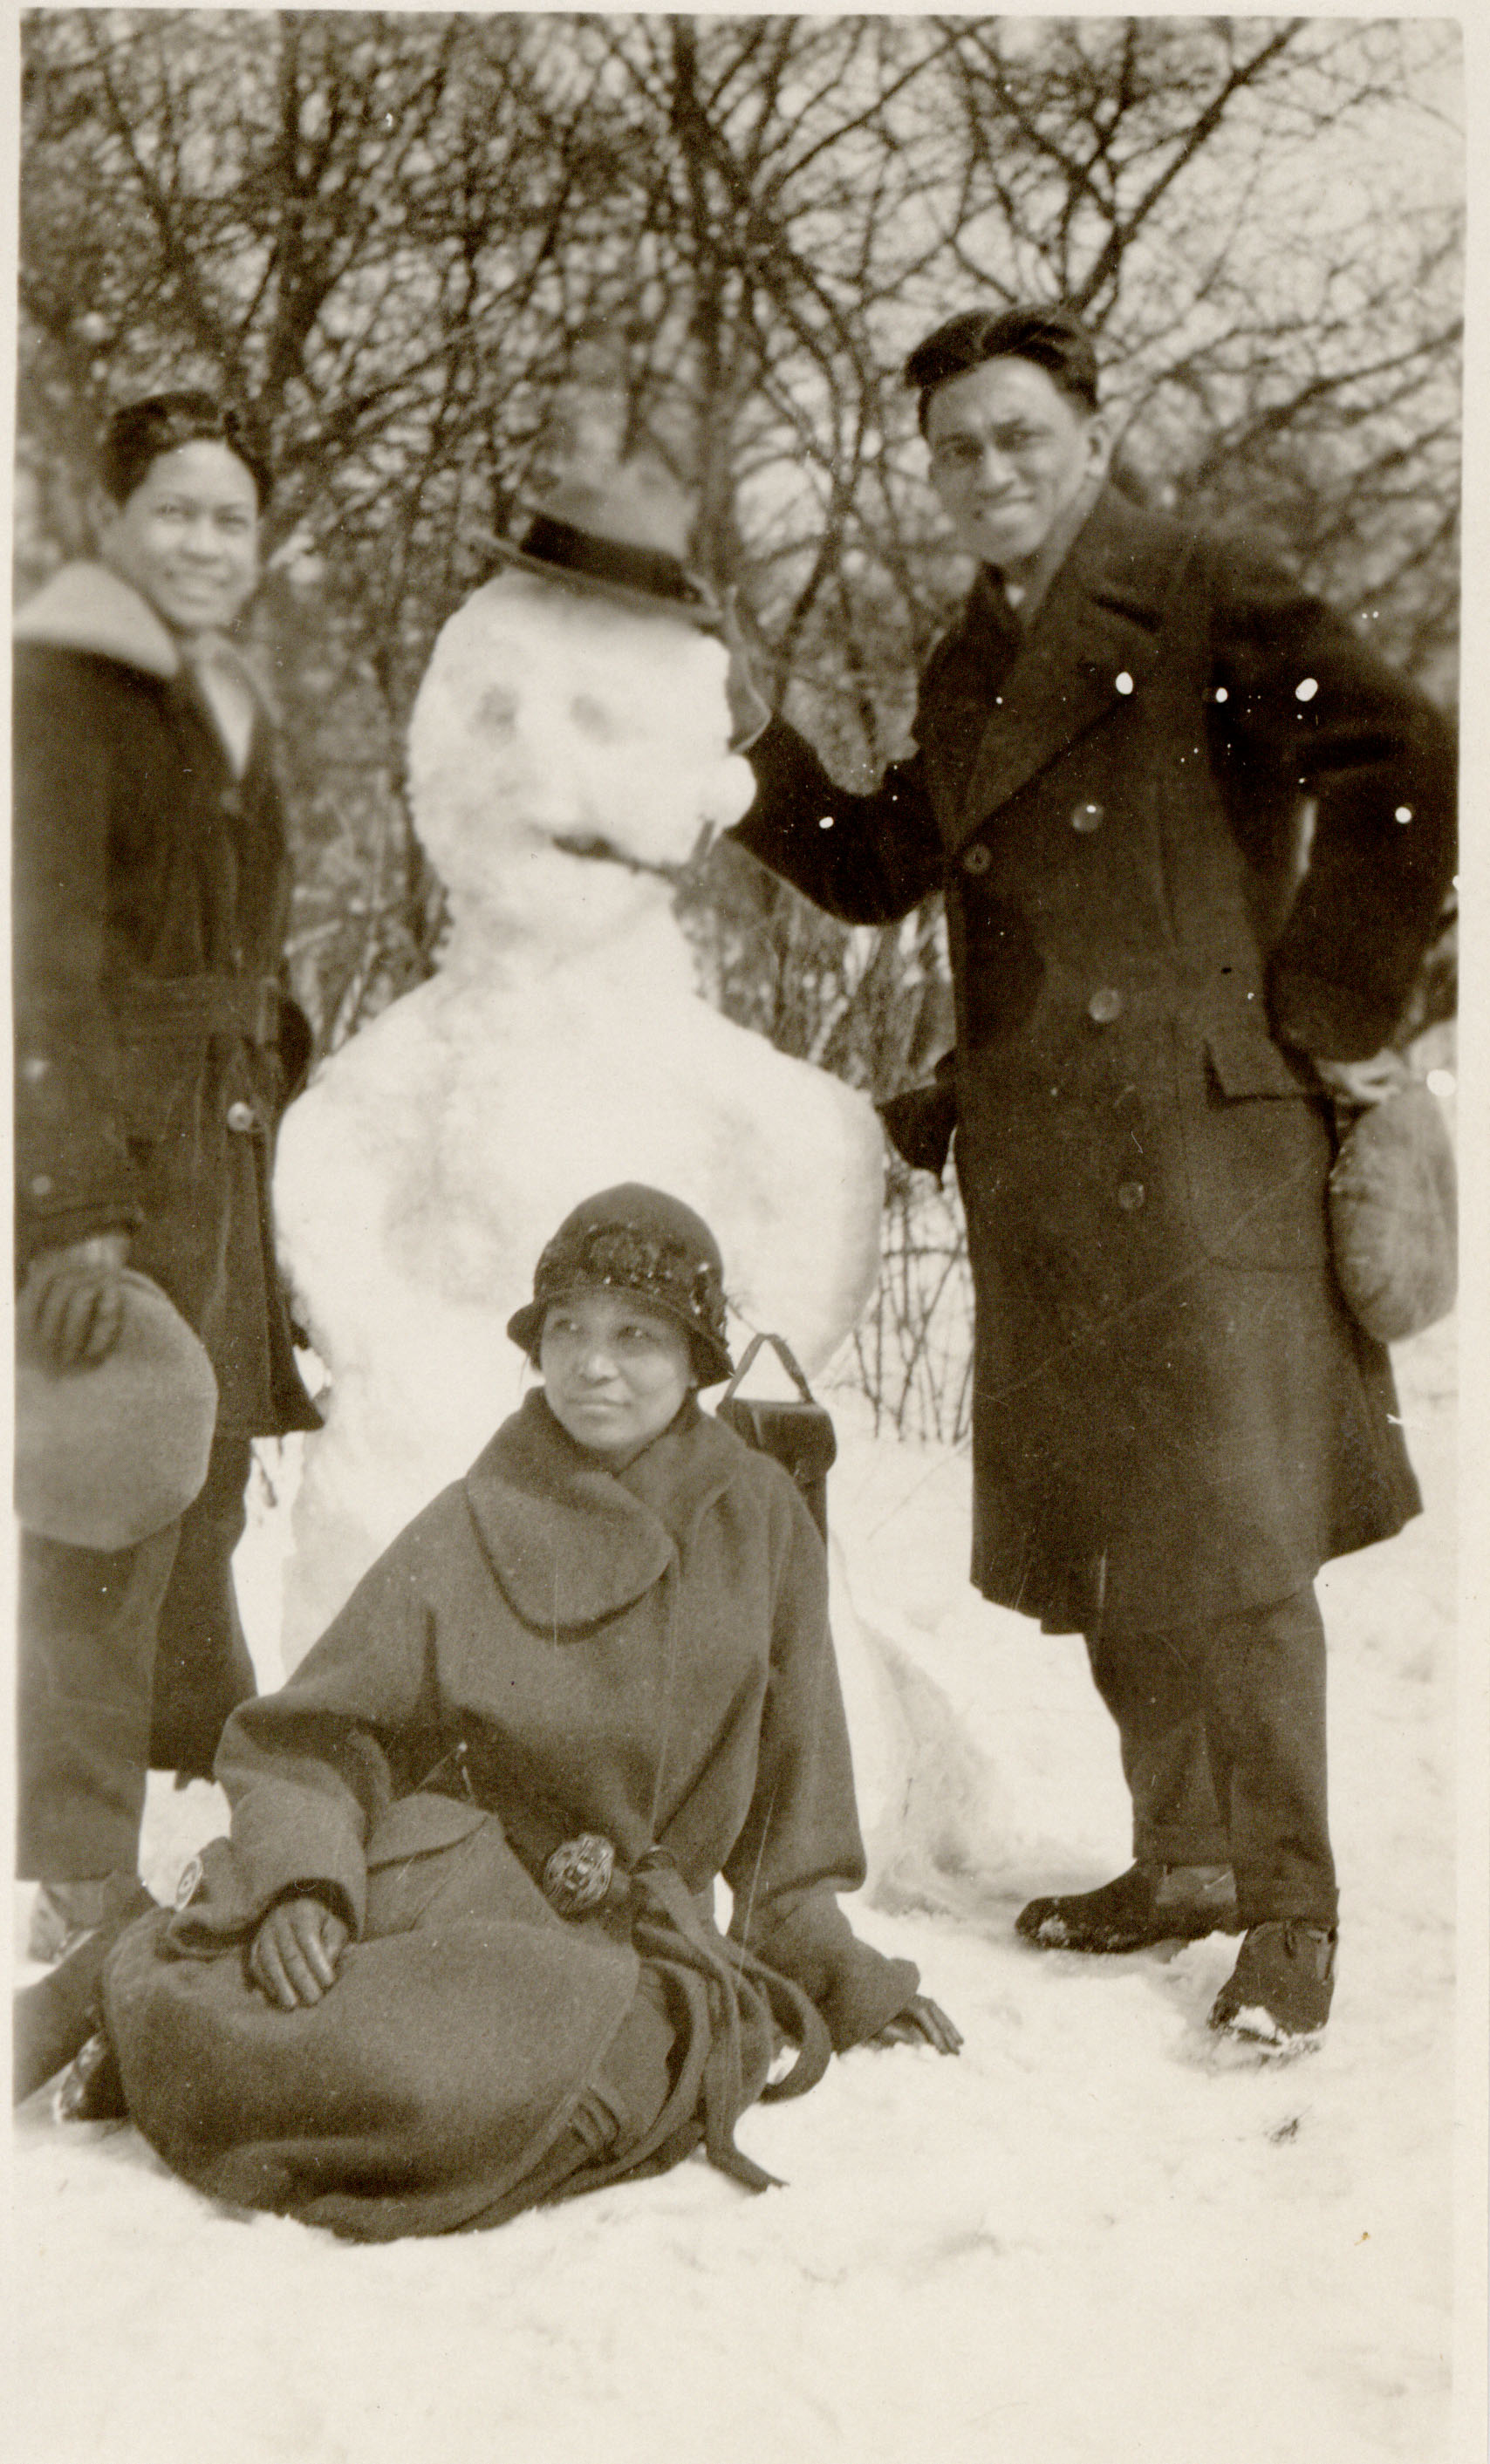 Photograph of Alayu family gathered around a snowman.